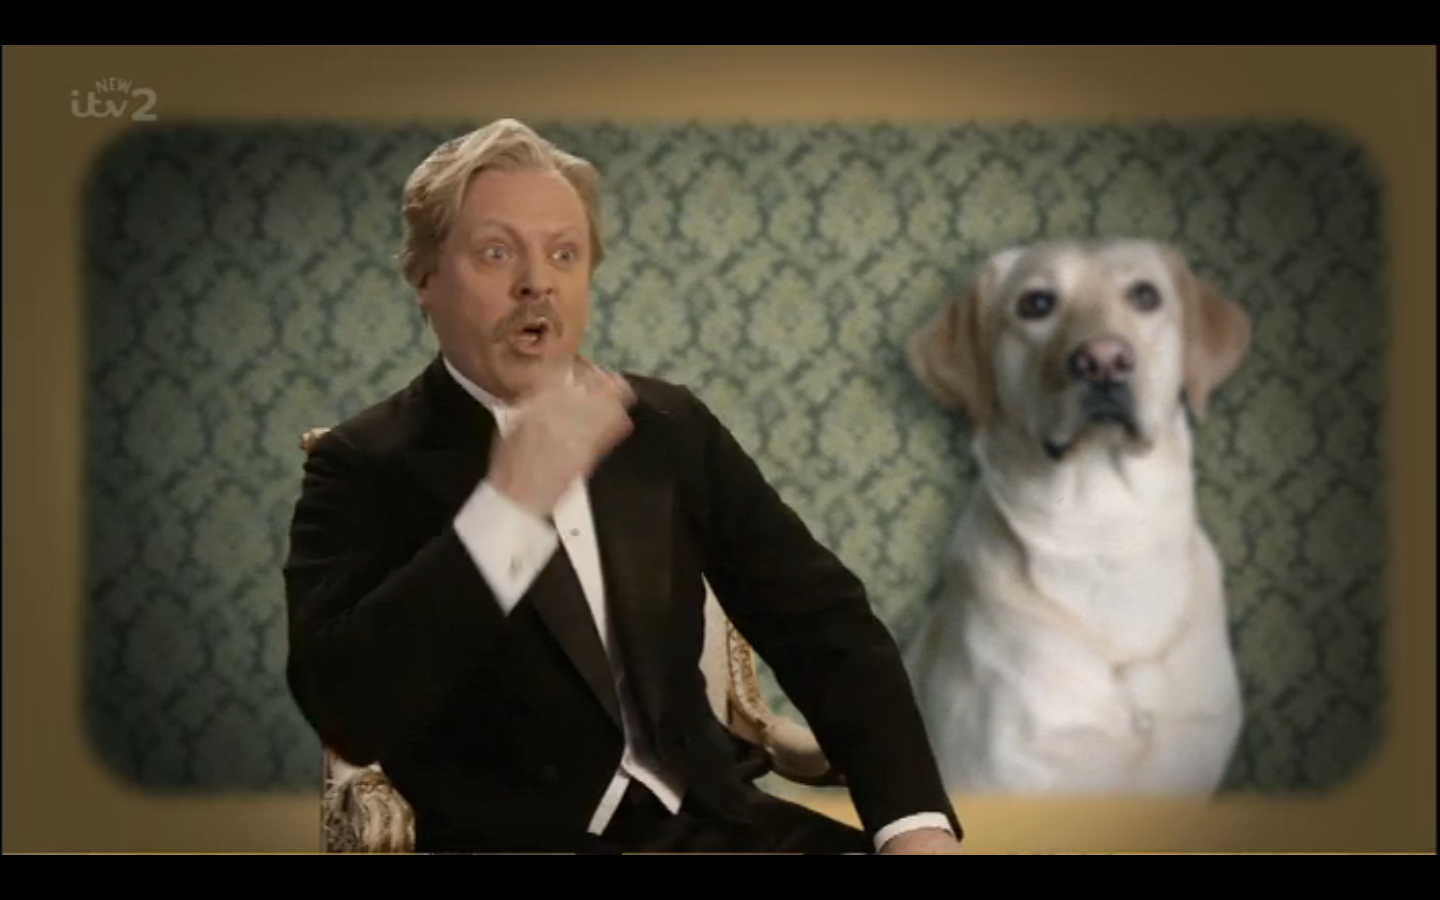 RT @itv2: #ChopSniffChopSniff  #Downton #KeithLemonSketchShow http://t.co/SeEyrwdOCl